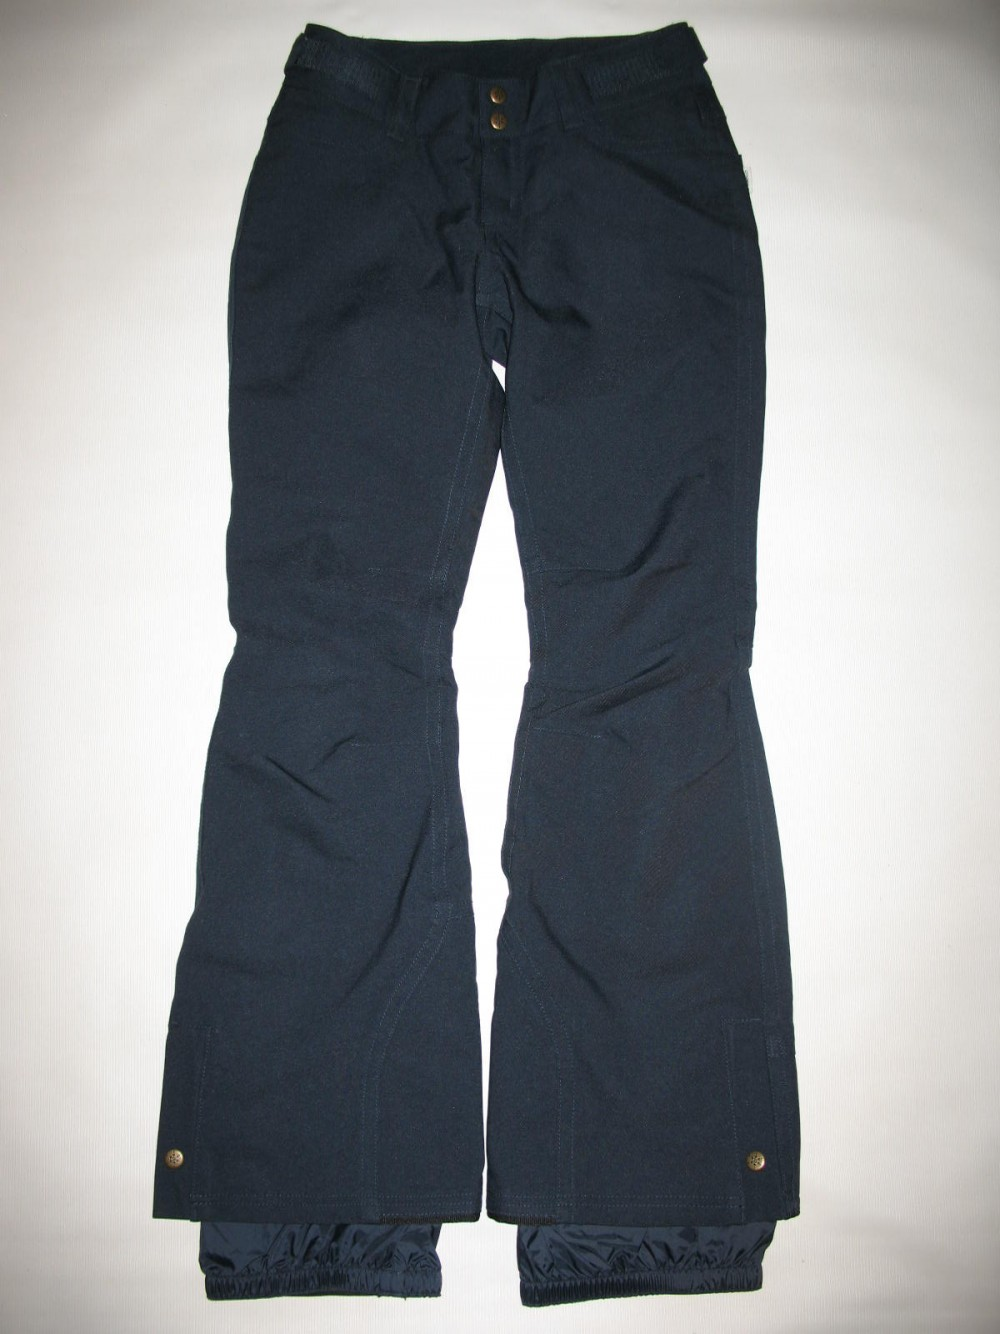 Штаны O'NEILL pw friday skinny pants lady (размер XS/S) - 1